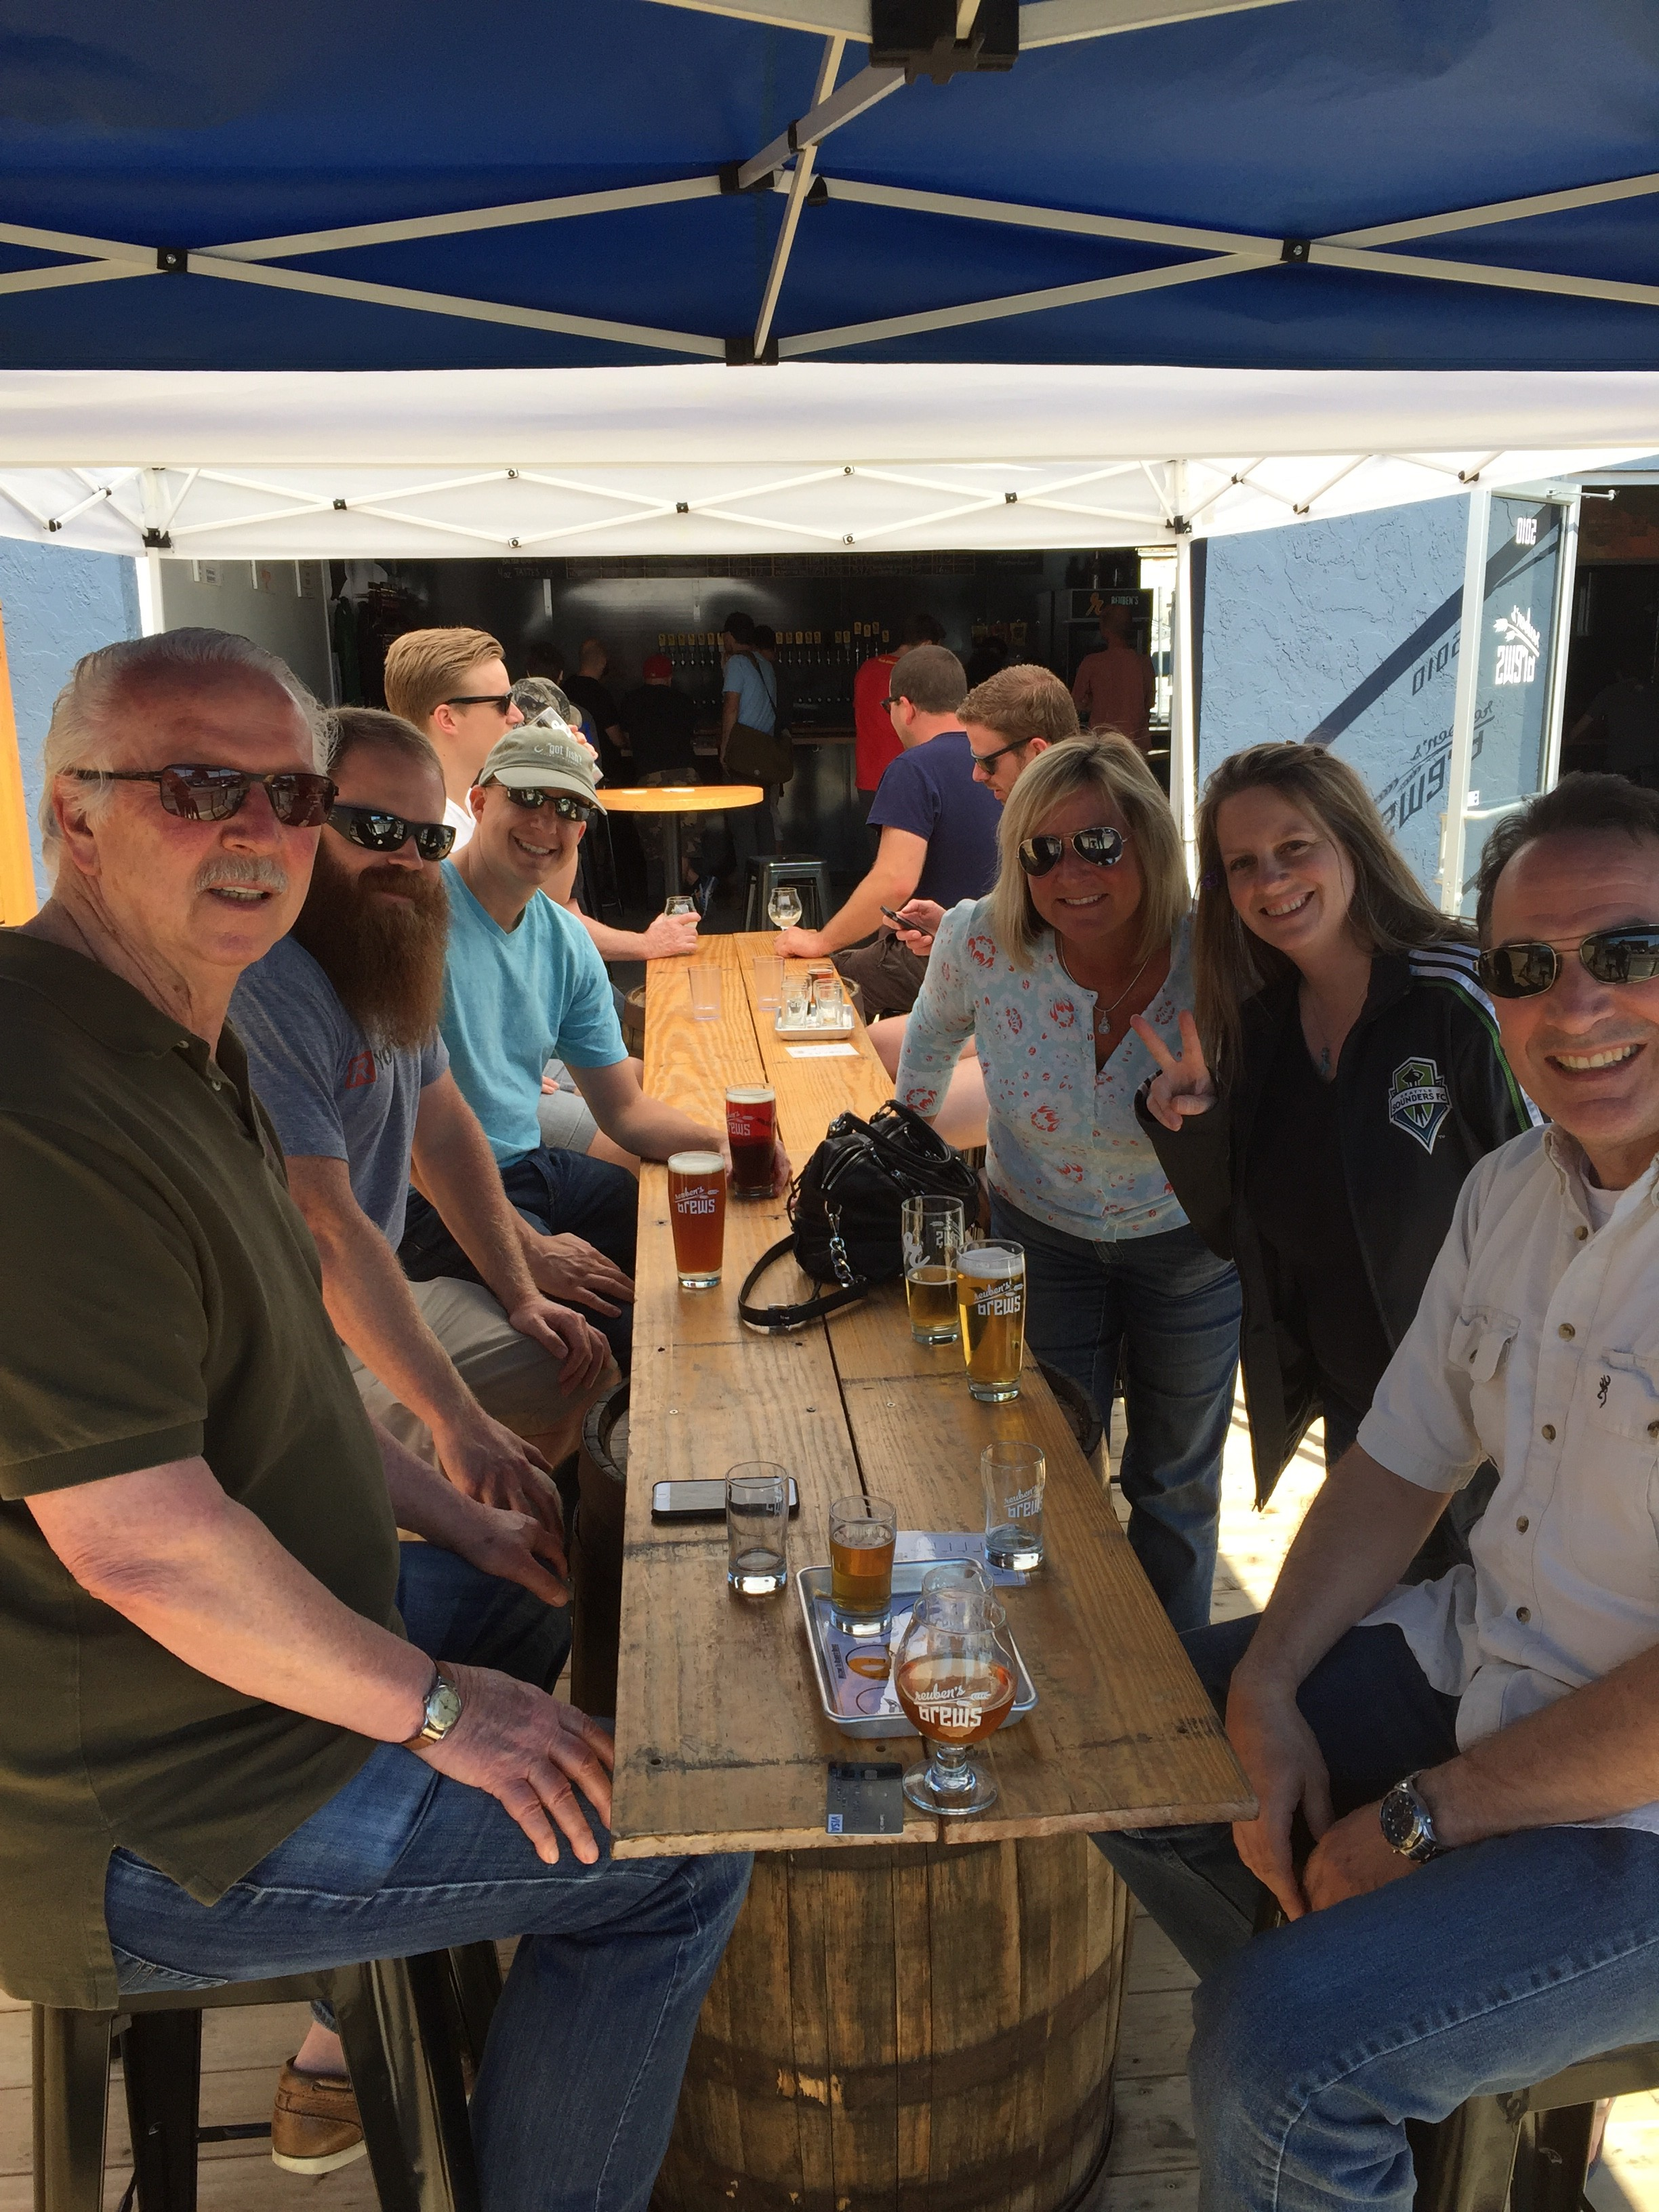 Seattle (Ballard) – The Keyport Team Grabs a Pint